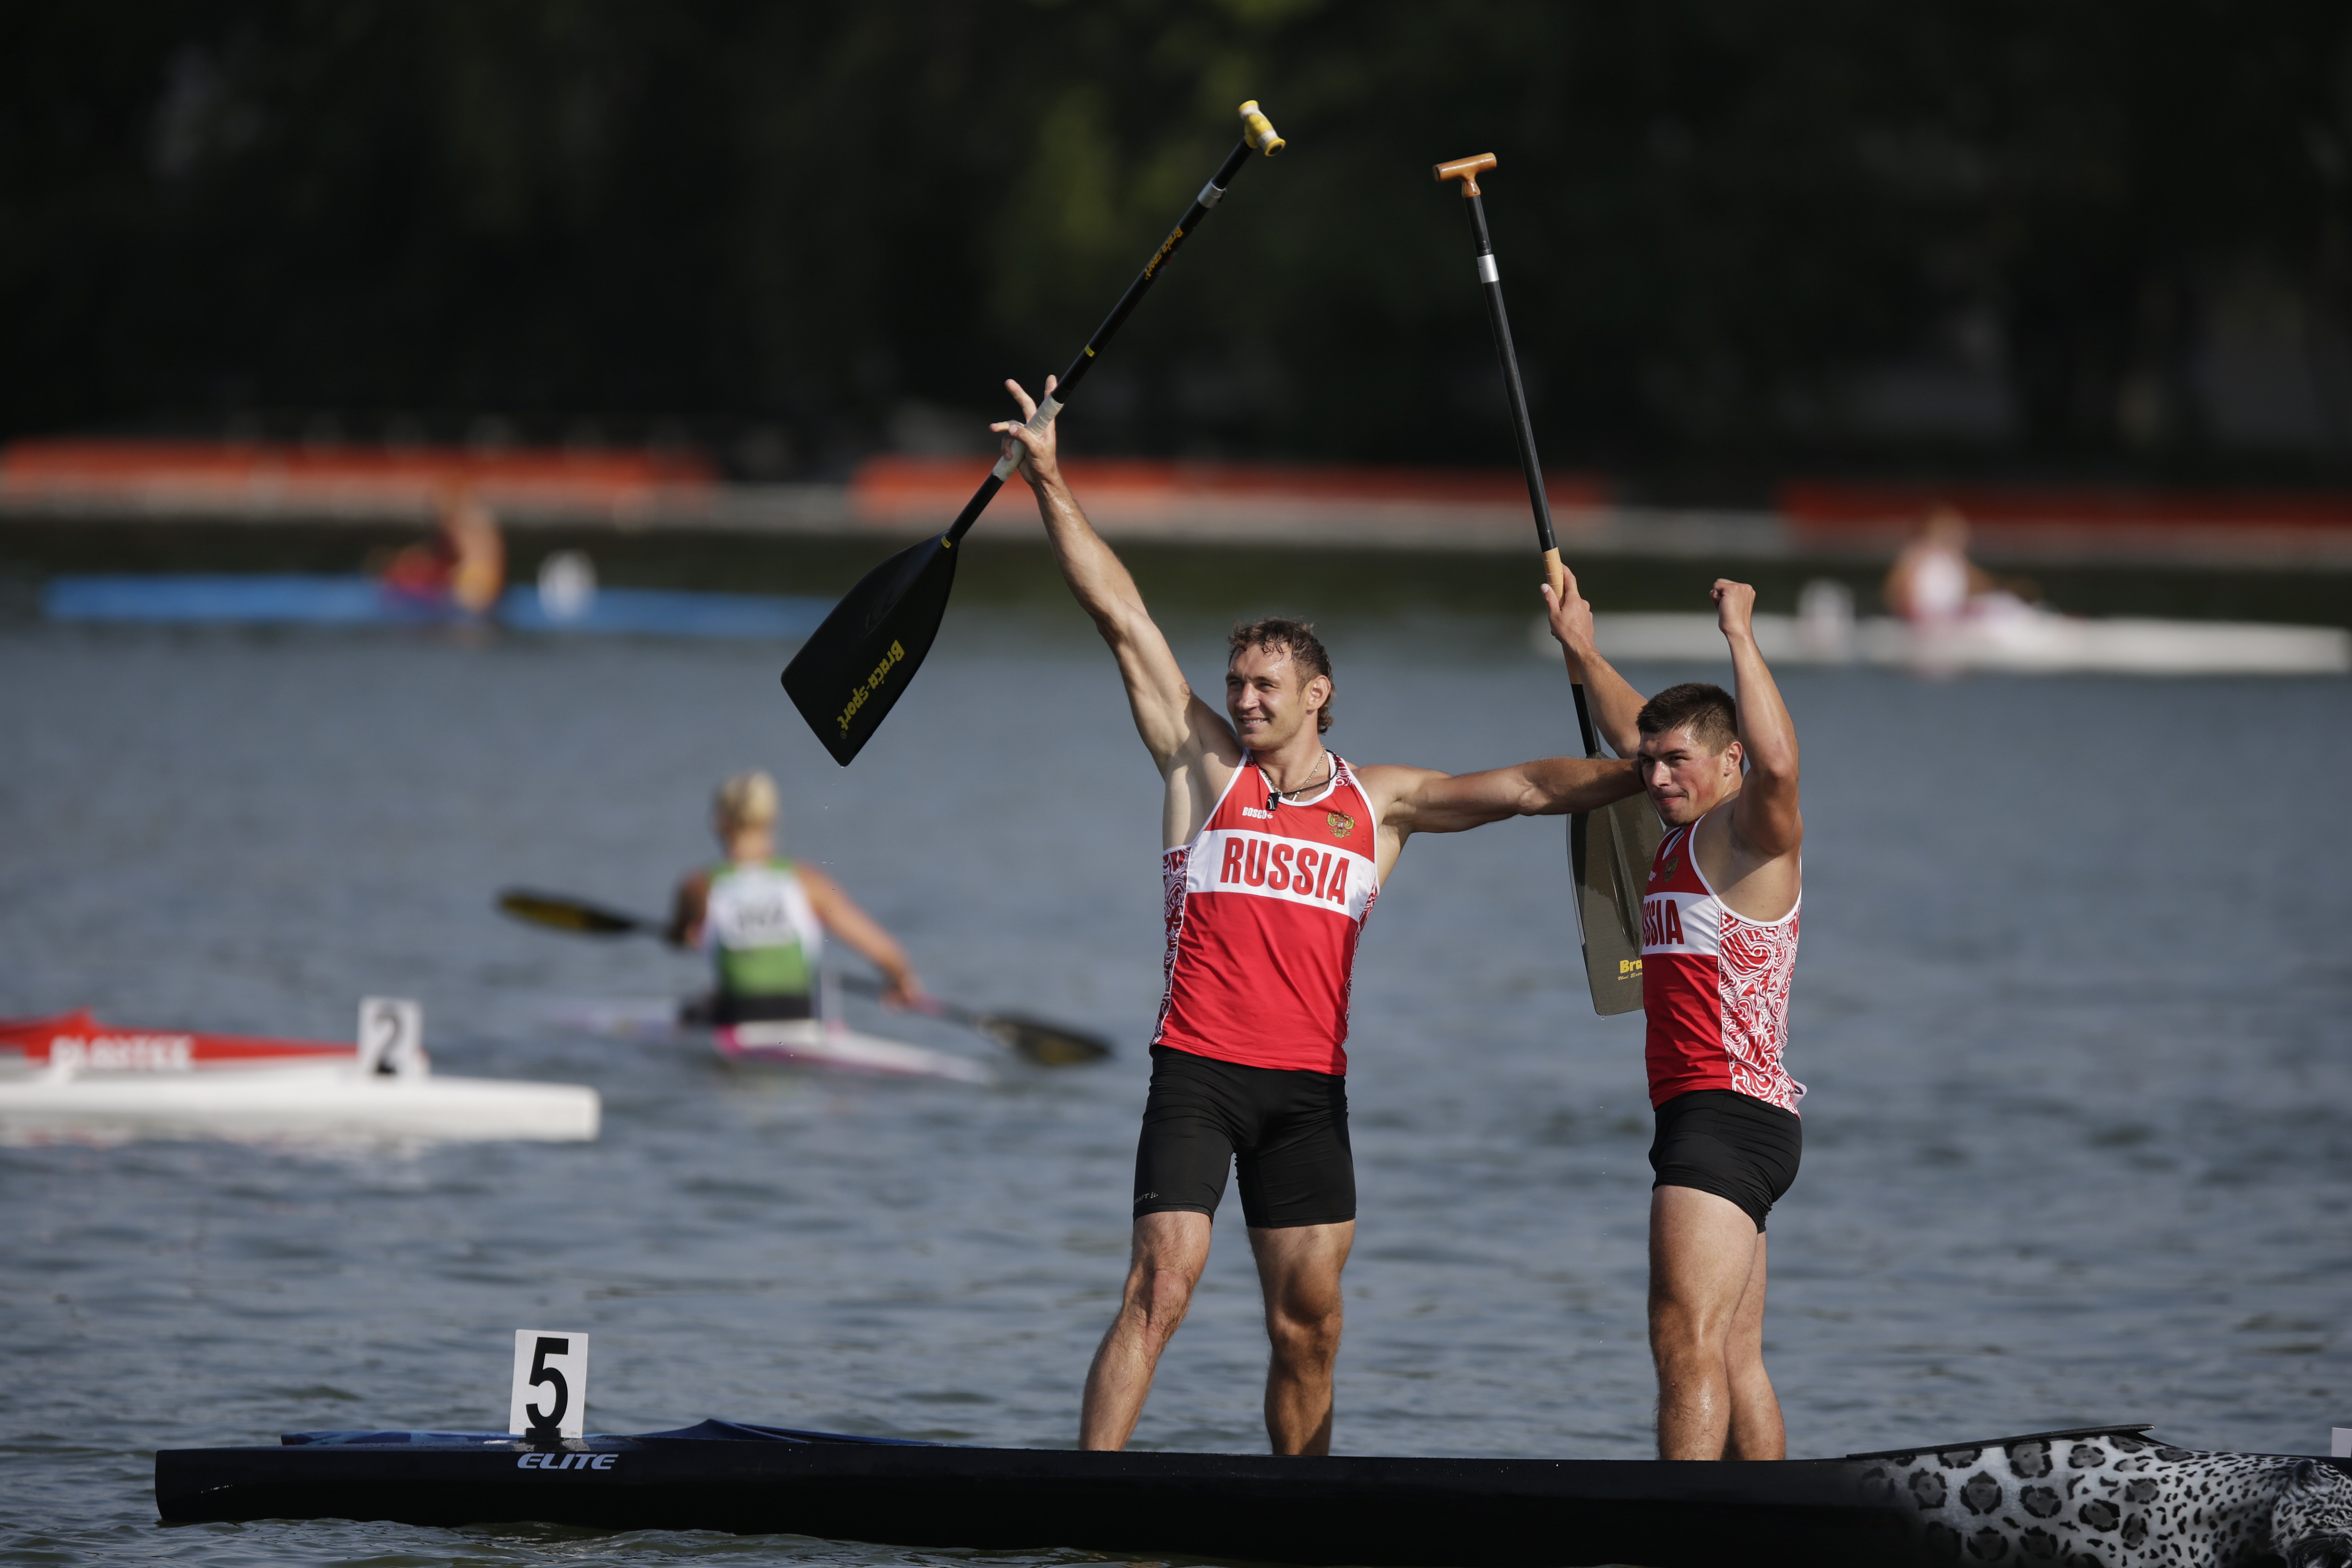 FILE In this Sunday, Aug. 10, 2014 file photo Winners Nikolay Lipkin, center, and Andrey Kraitor of Russia celebrate after they won the C1 relay men 200m final of the ICF Canoe Sprint World Championships 2014 in Moscow, Russia. The International Canoe Fed